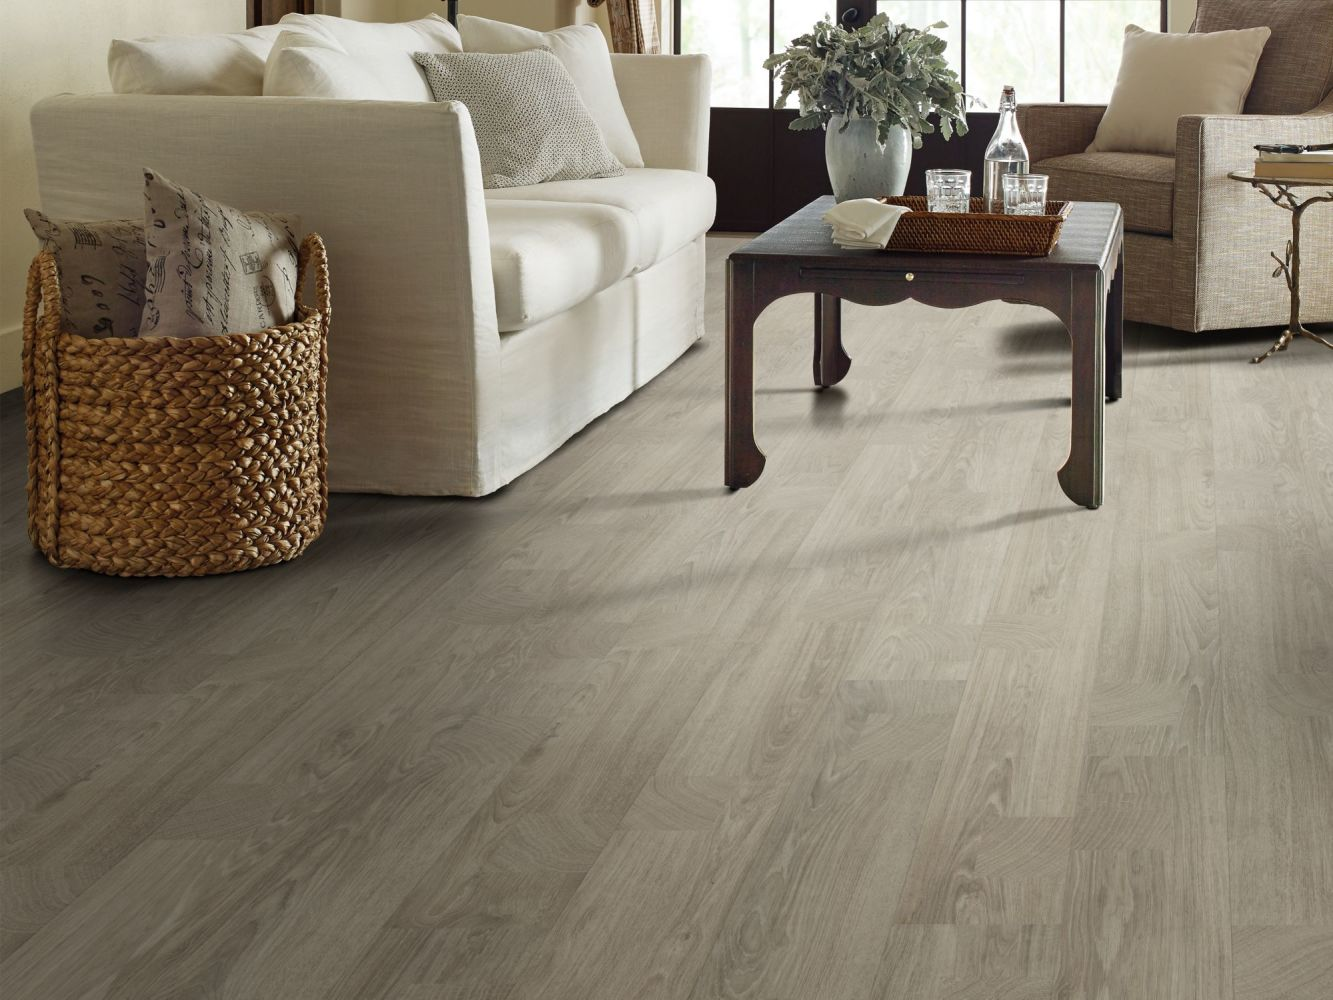 Shaw Floors SFA Adventure XL Hd+milled Wool 01044_701SA